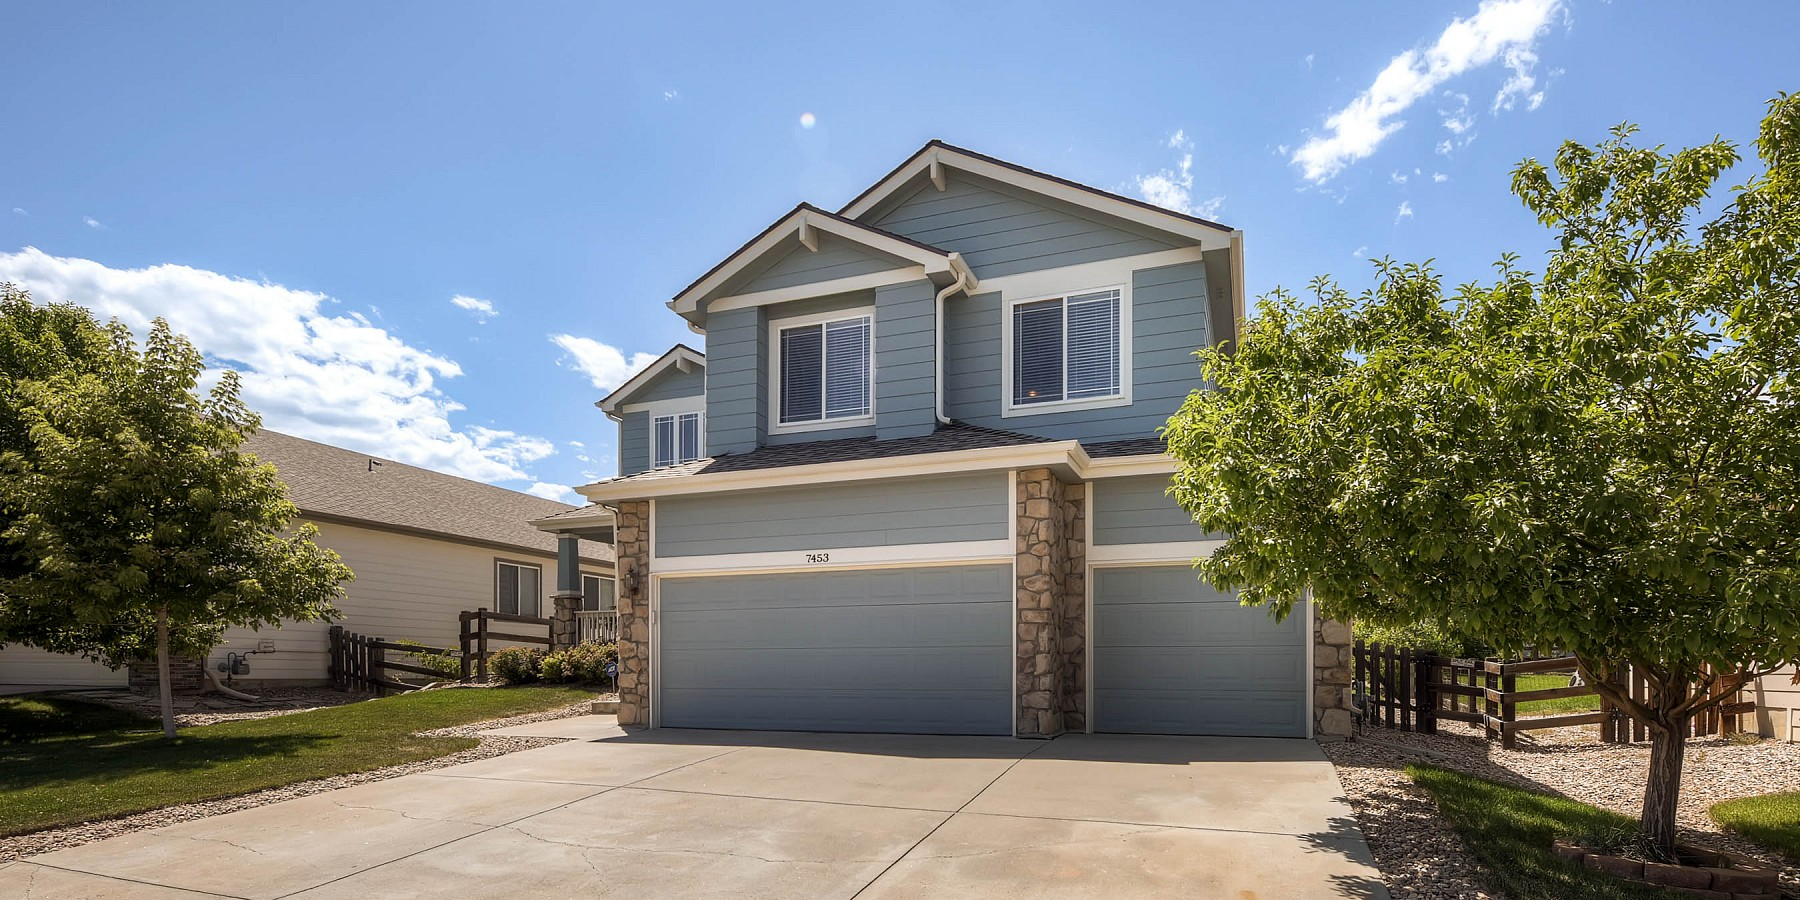 7453 Chipmunk Place, Littleton, CO 80125